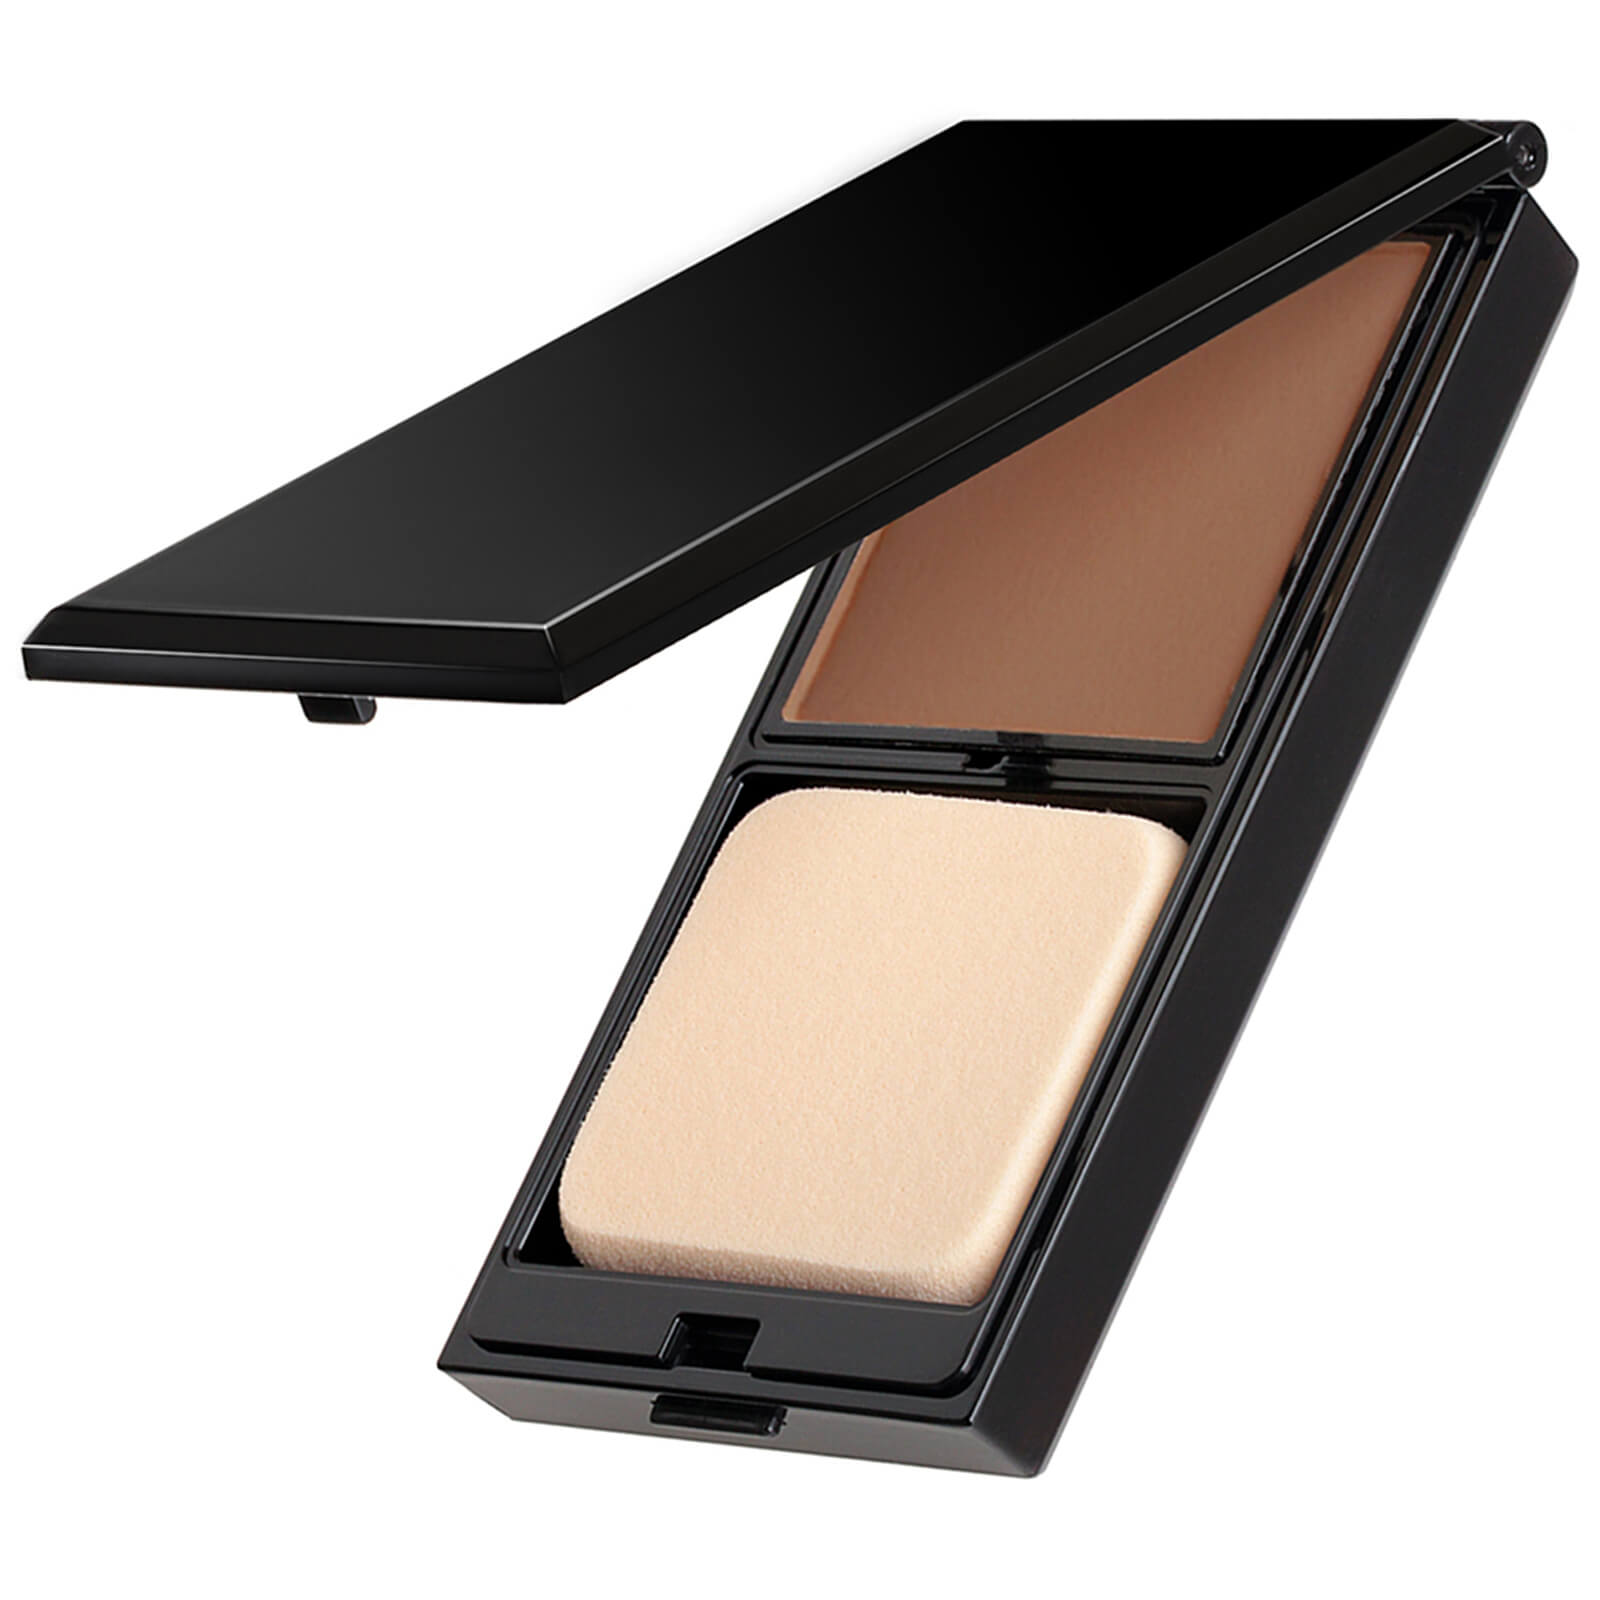 Serge Lutens Compact Foundation Teint si Fin Refill 8g (Various Shades) - D10